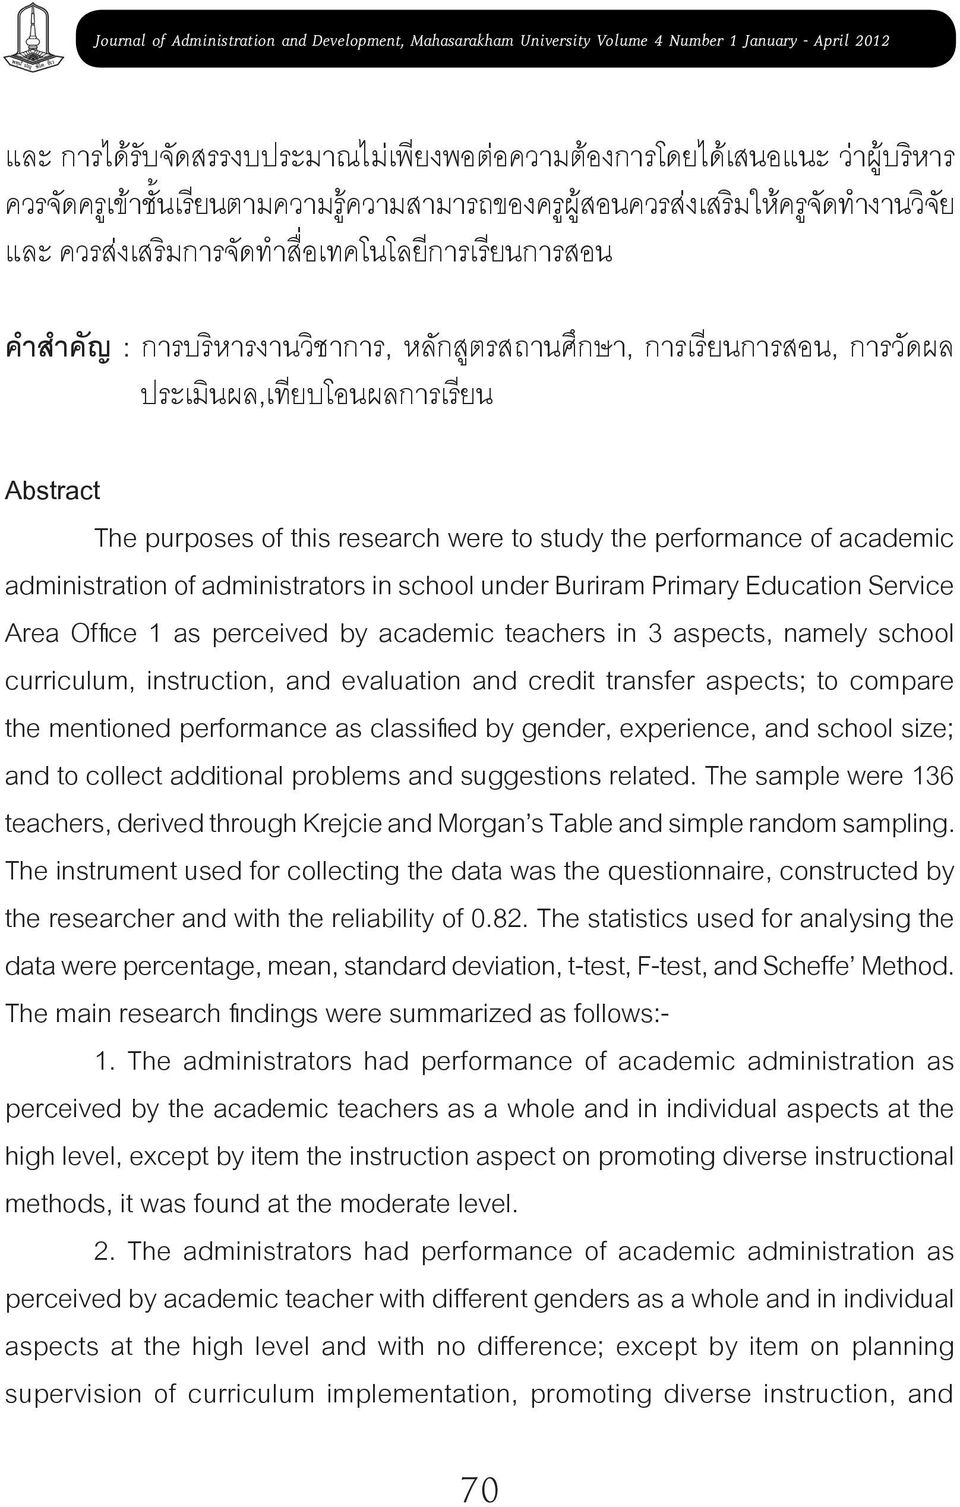 academic administration of administrators in school under Buriram Primary Education Service Area Office 1 as perceived by academic teachers in 3 aspects, namely school curriculum, instruction, and